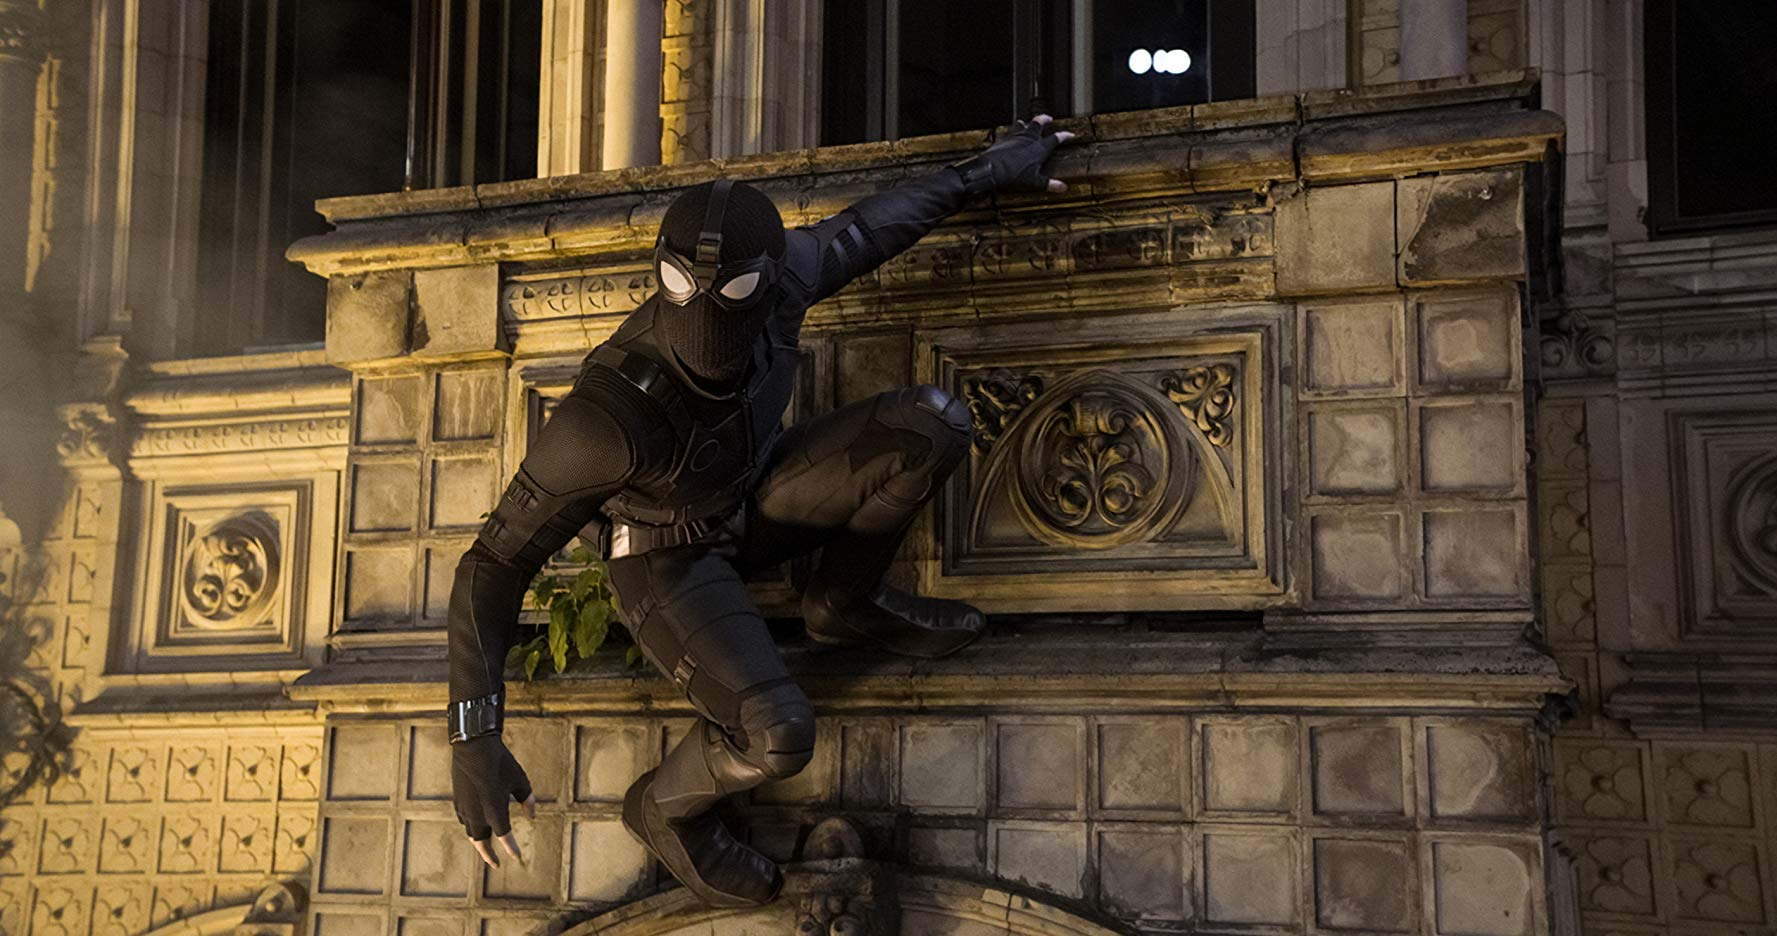 'Spider-Man: Far From Home' review: A roller coaster of expectations